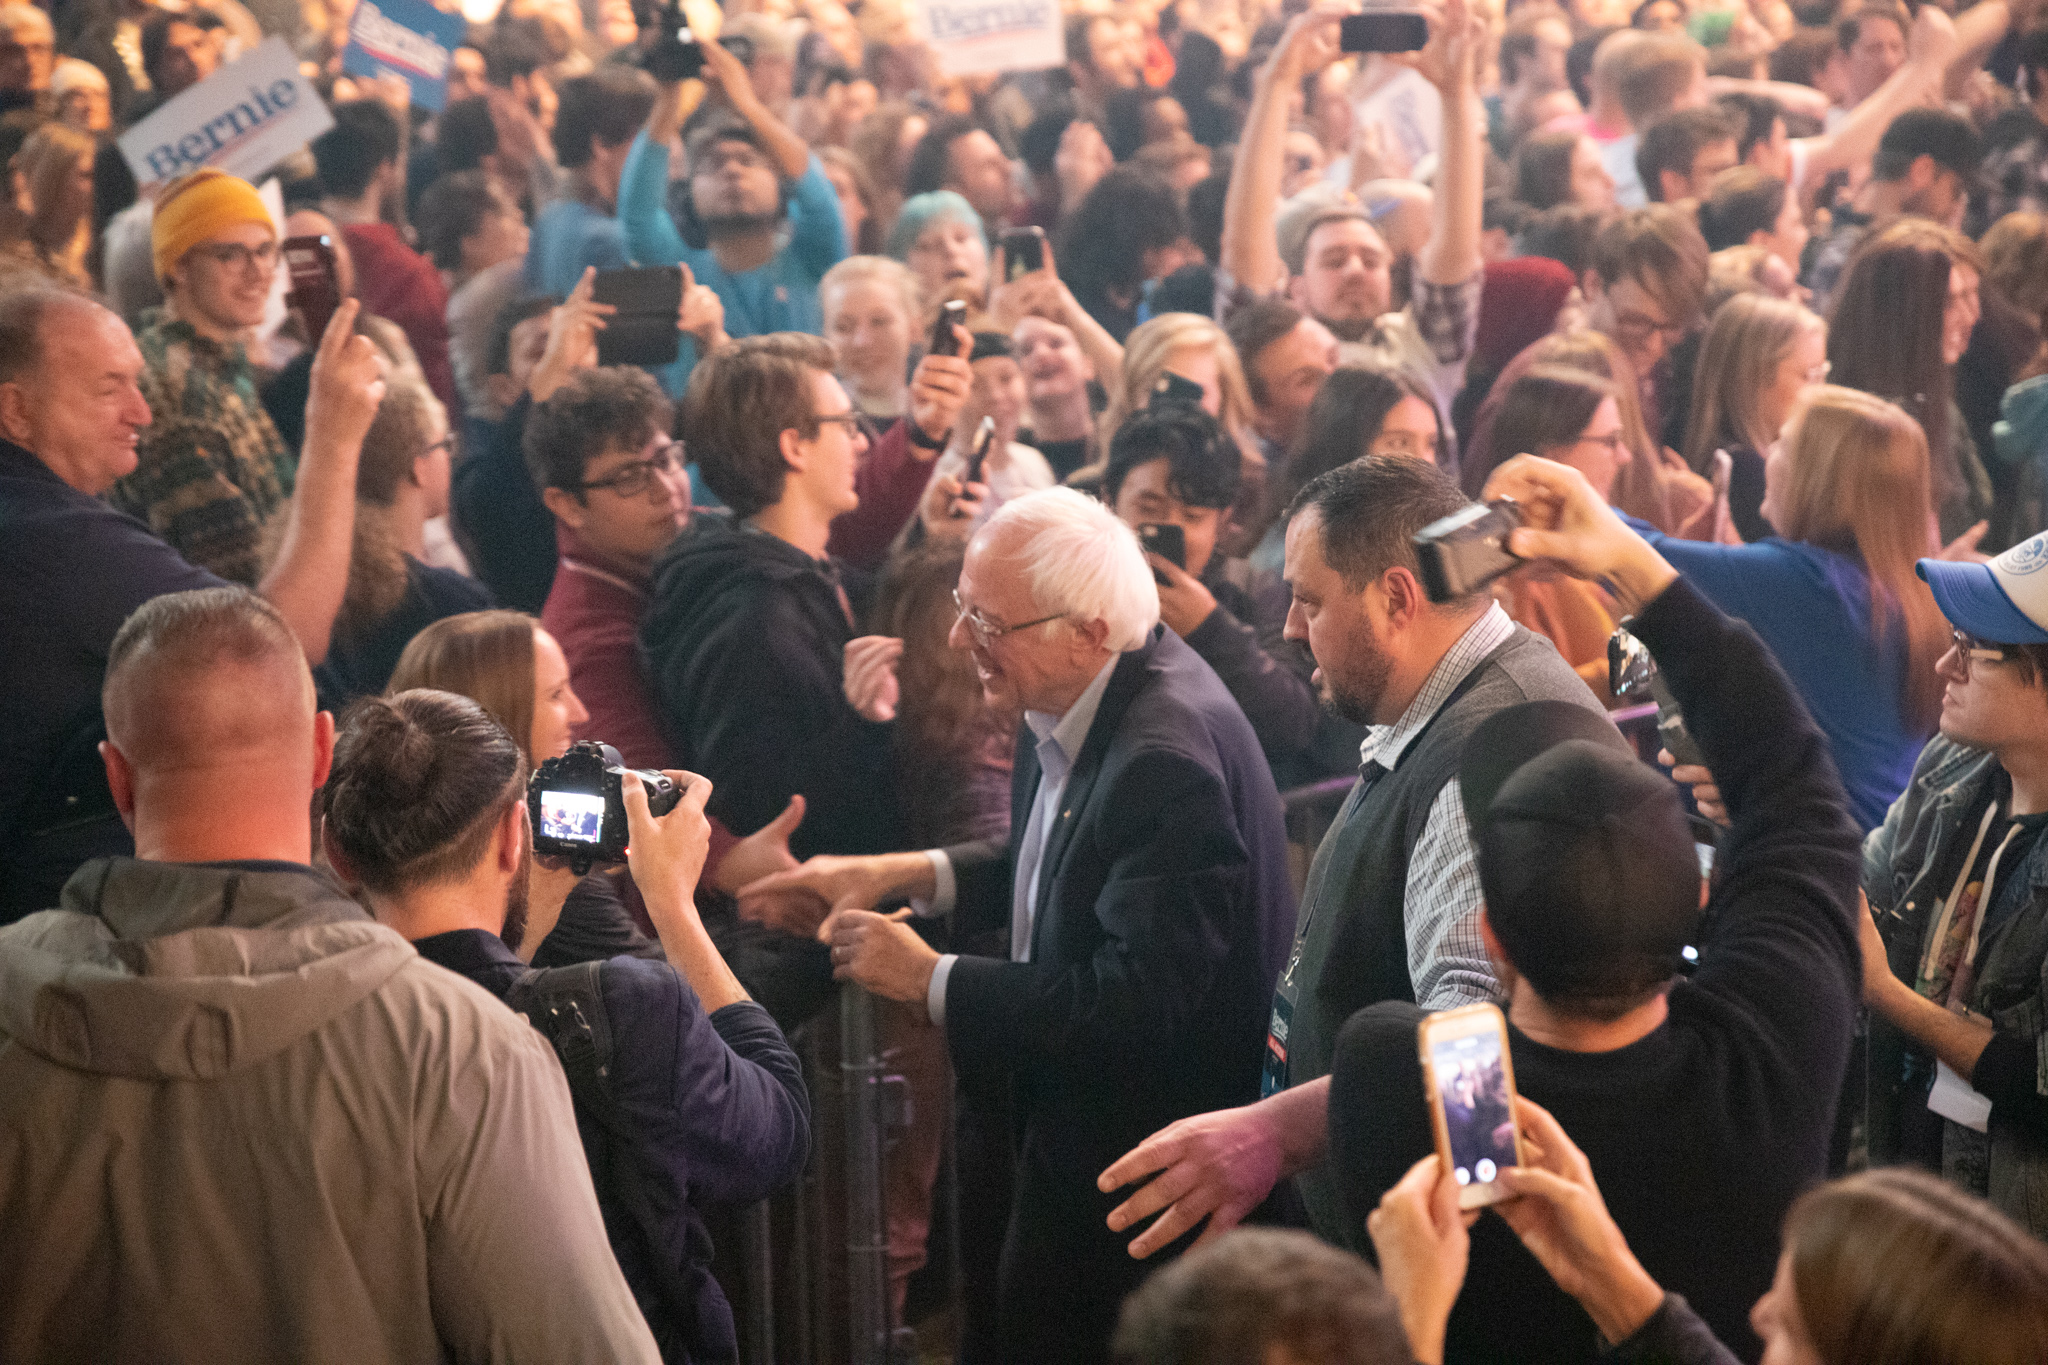 Sanders shaking hands with campaign crowd. (Francesca Mathewes, 14 East)